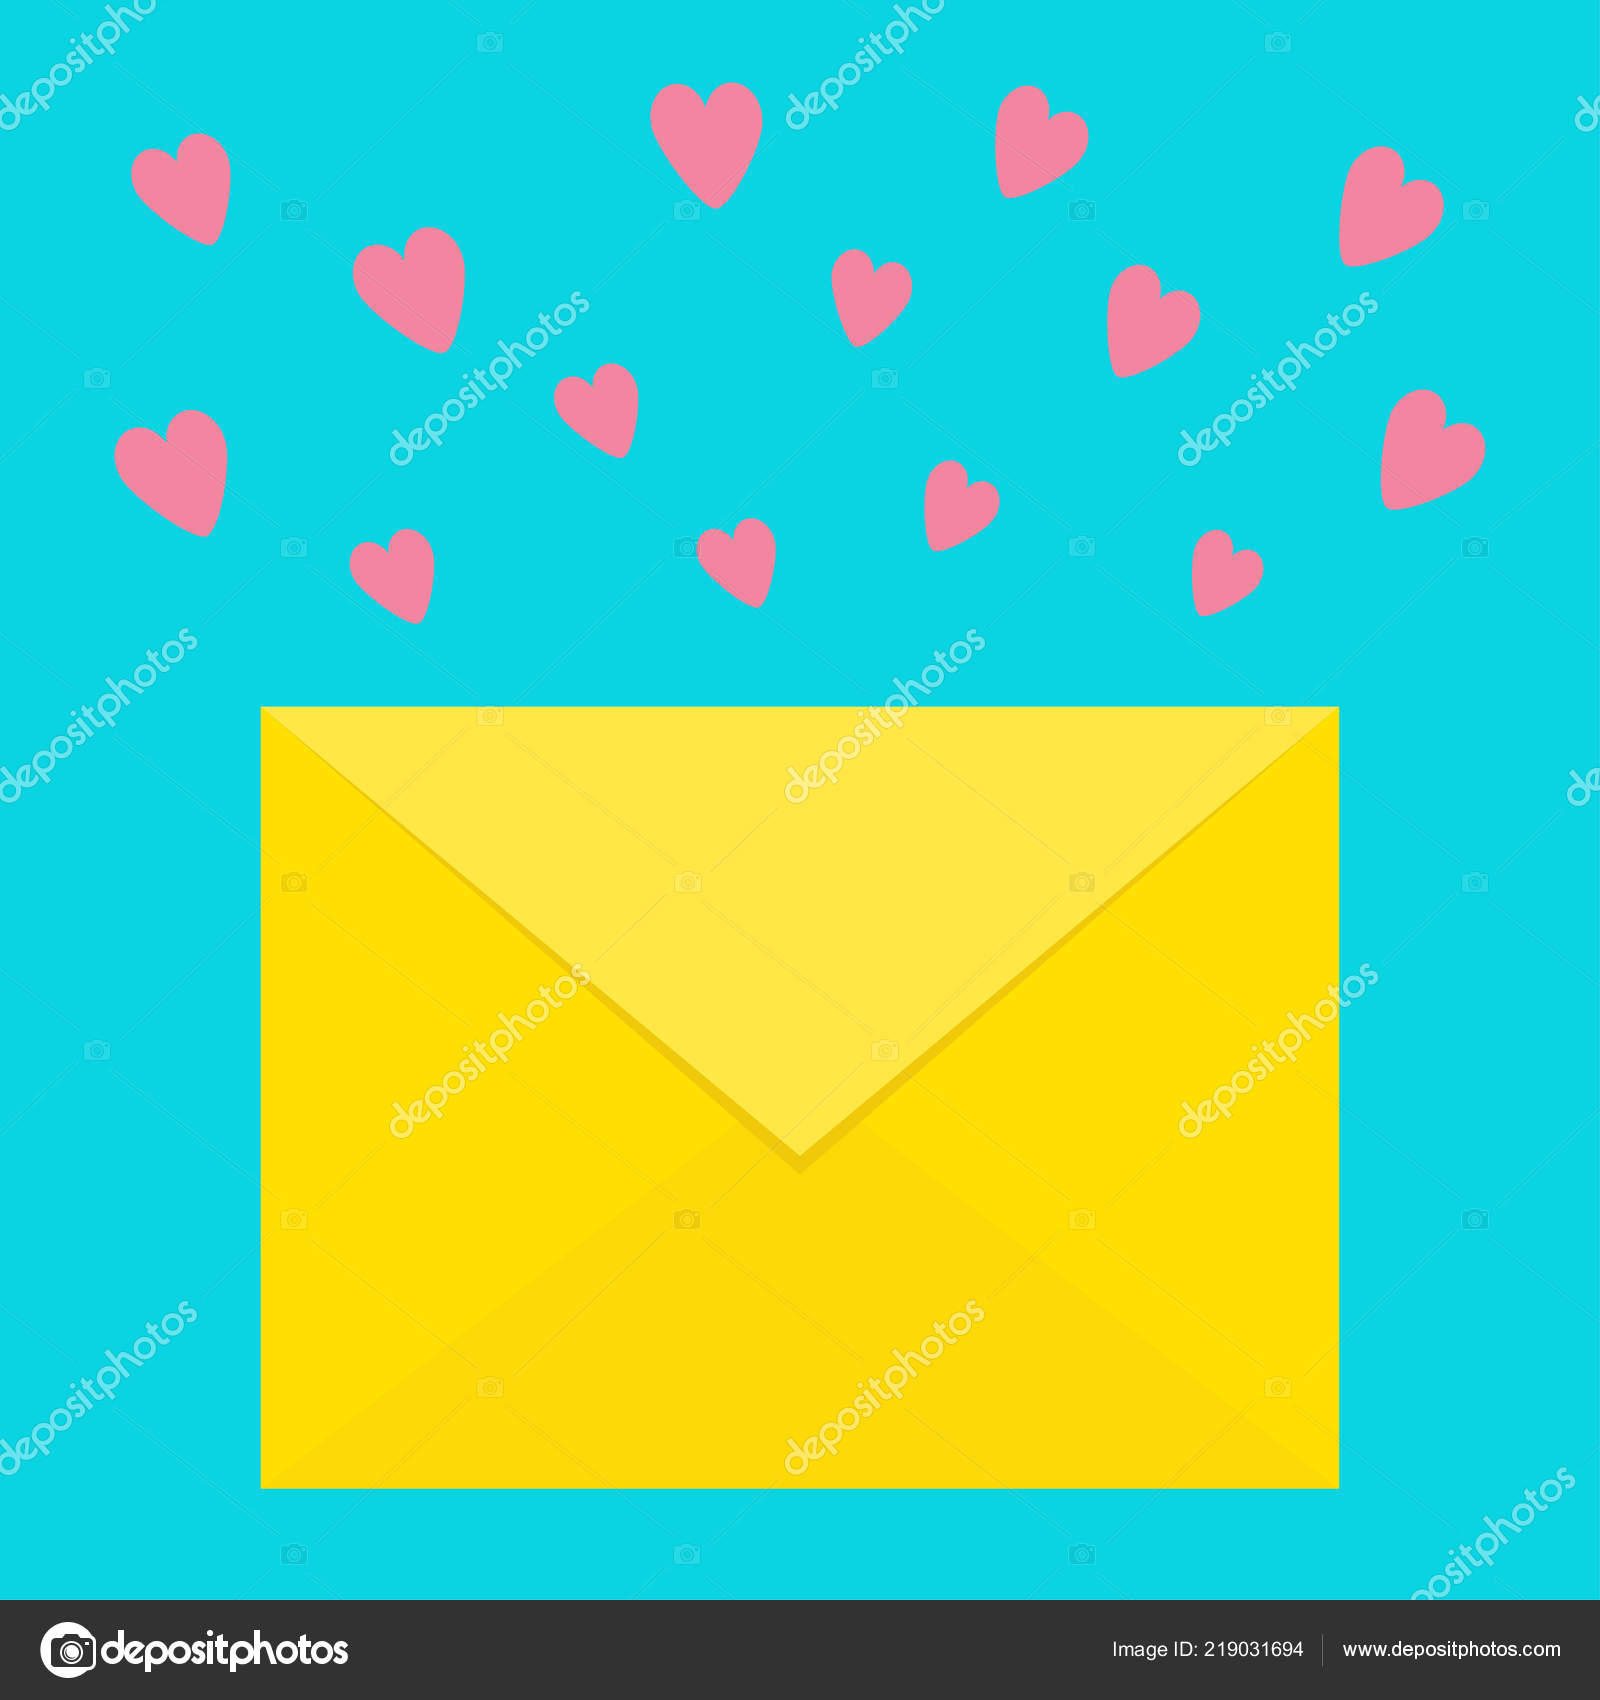 love letter template with pink flying hearts new message sign symbol unread notification flat design blue background isolated